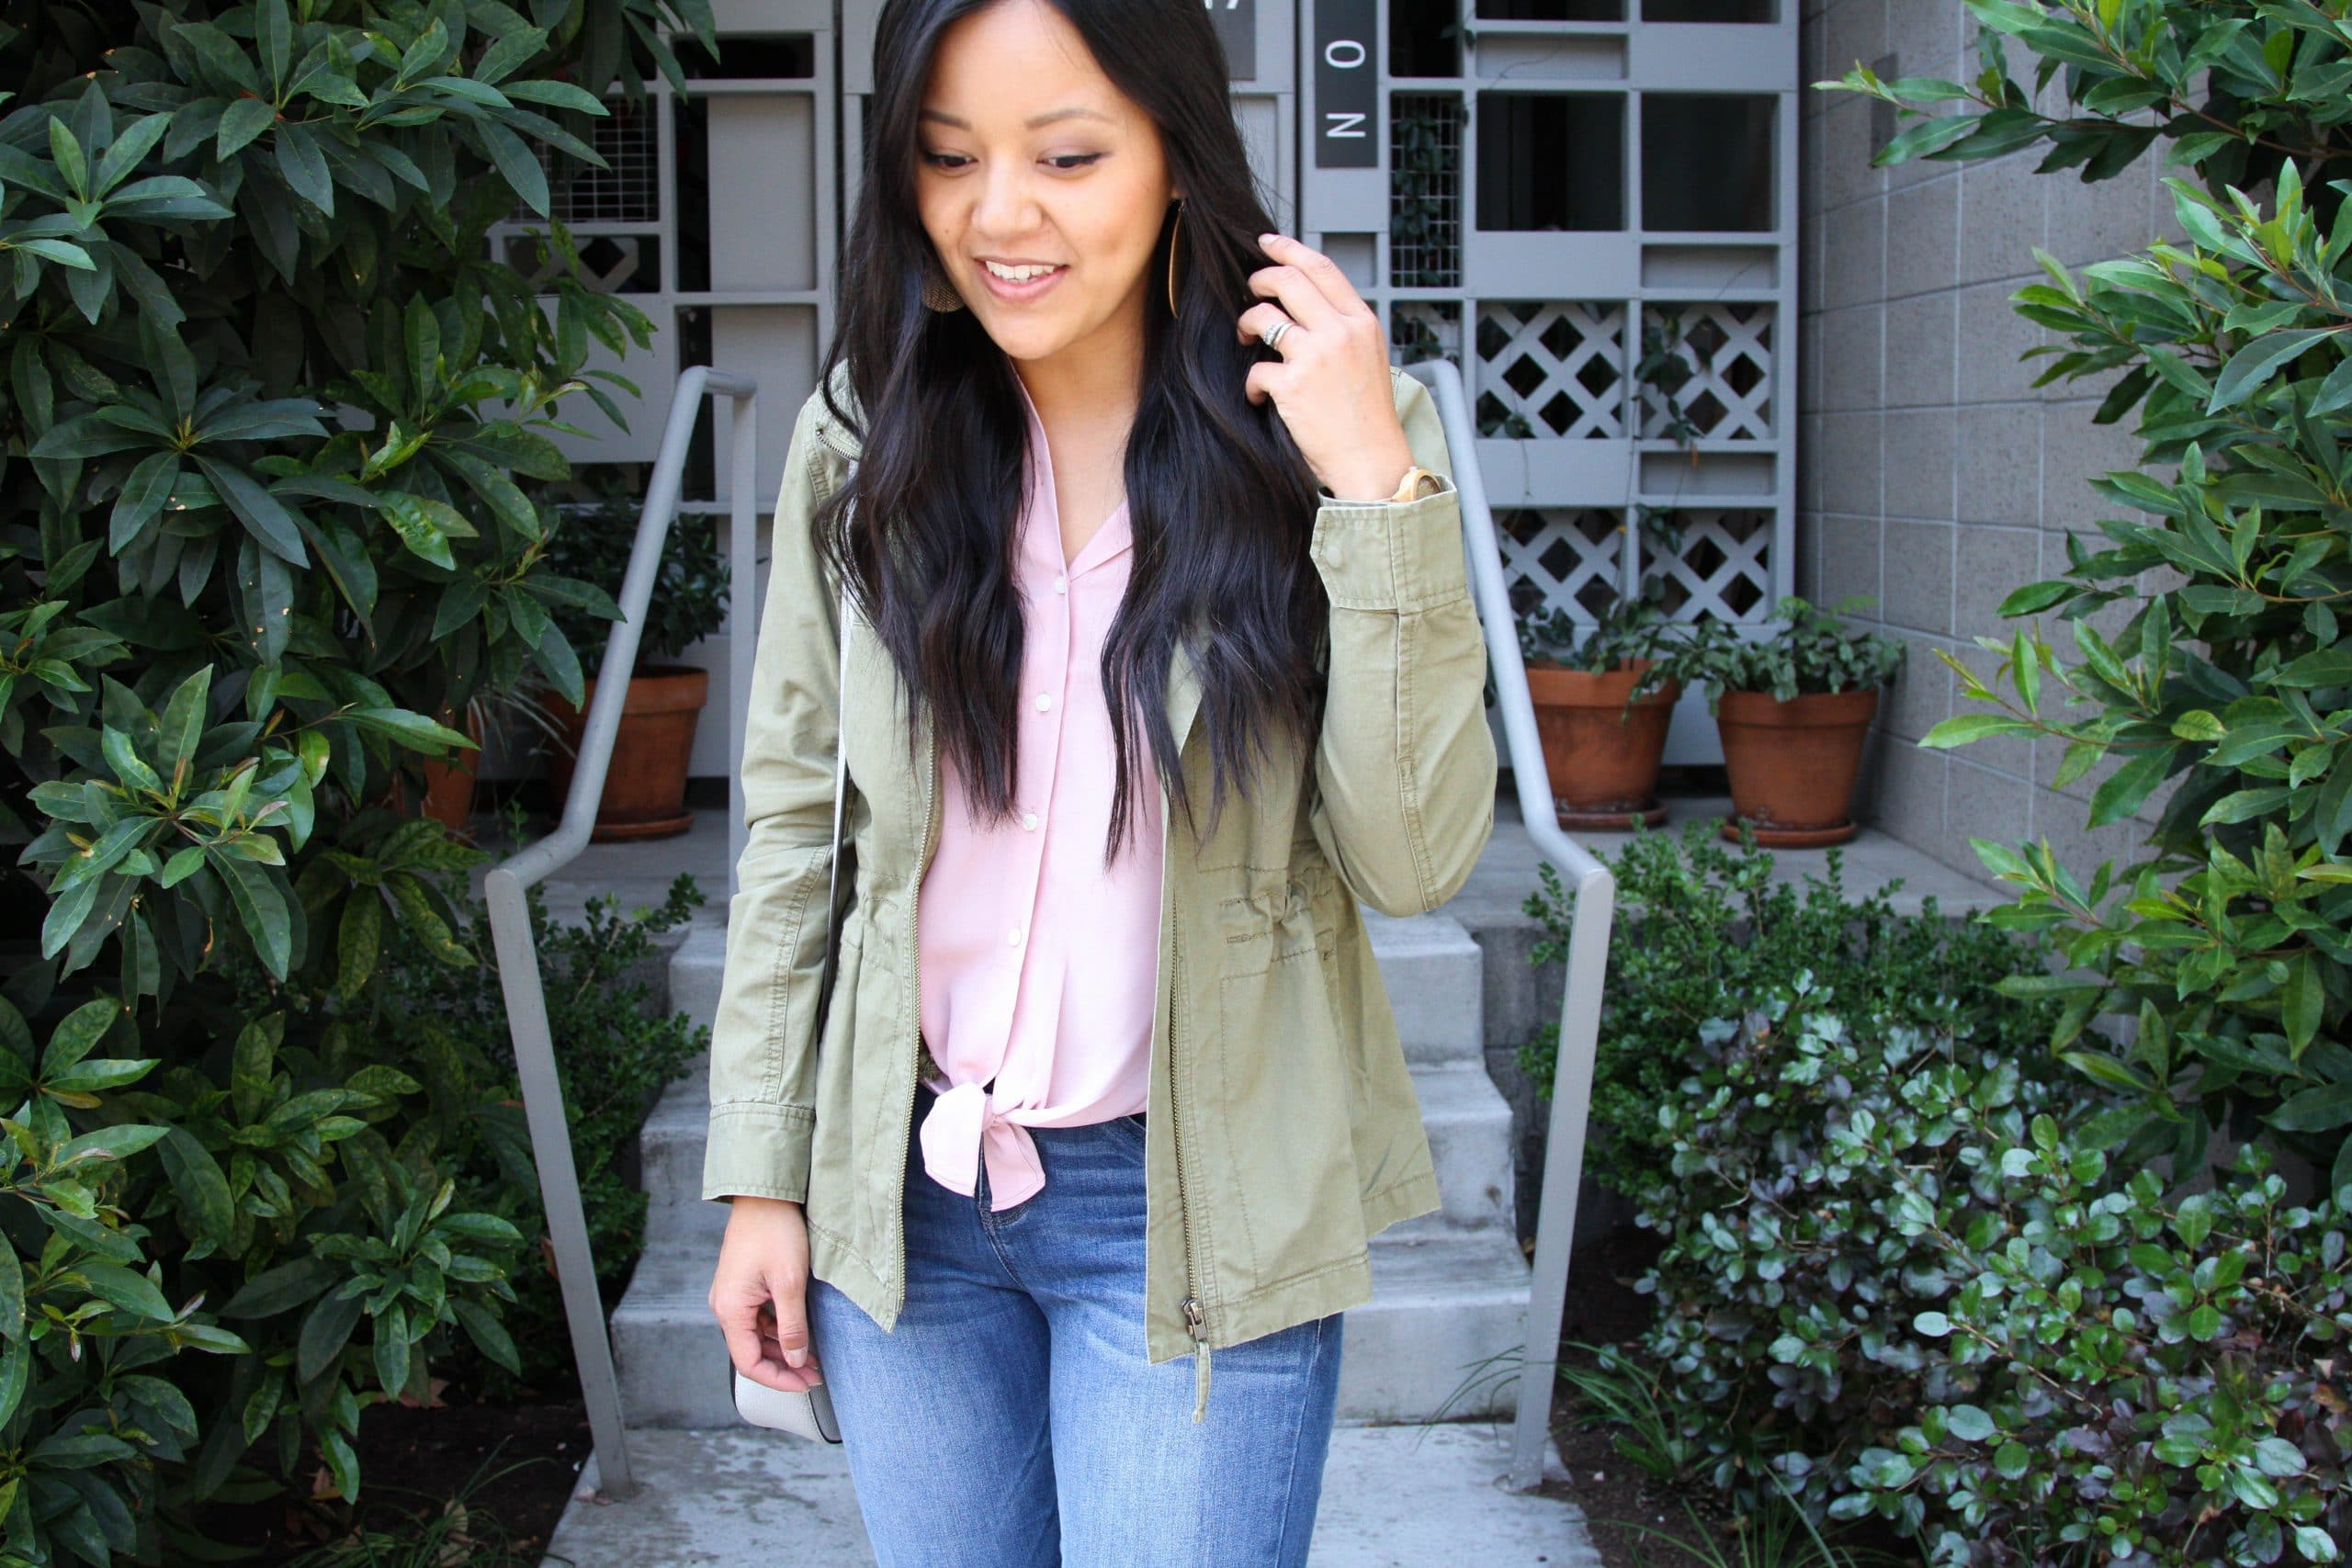 Pink top + Utility Jacket + Statement Earrings + Light Jeans